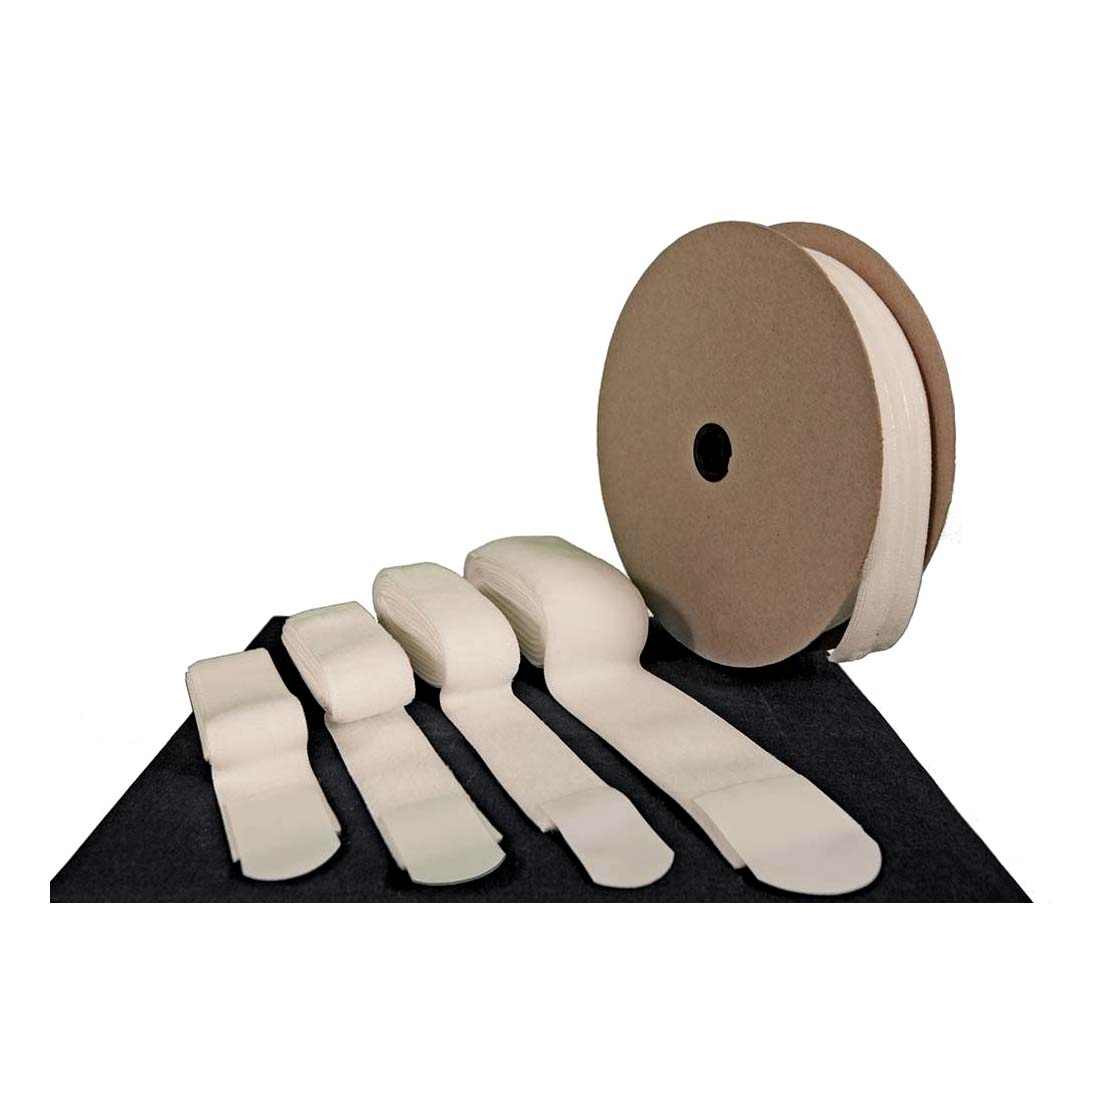 TheraTogs TogRite Strapping Material | TheraTogs Medicaleshop